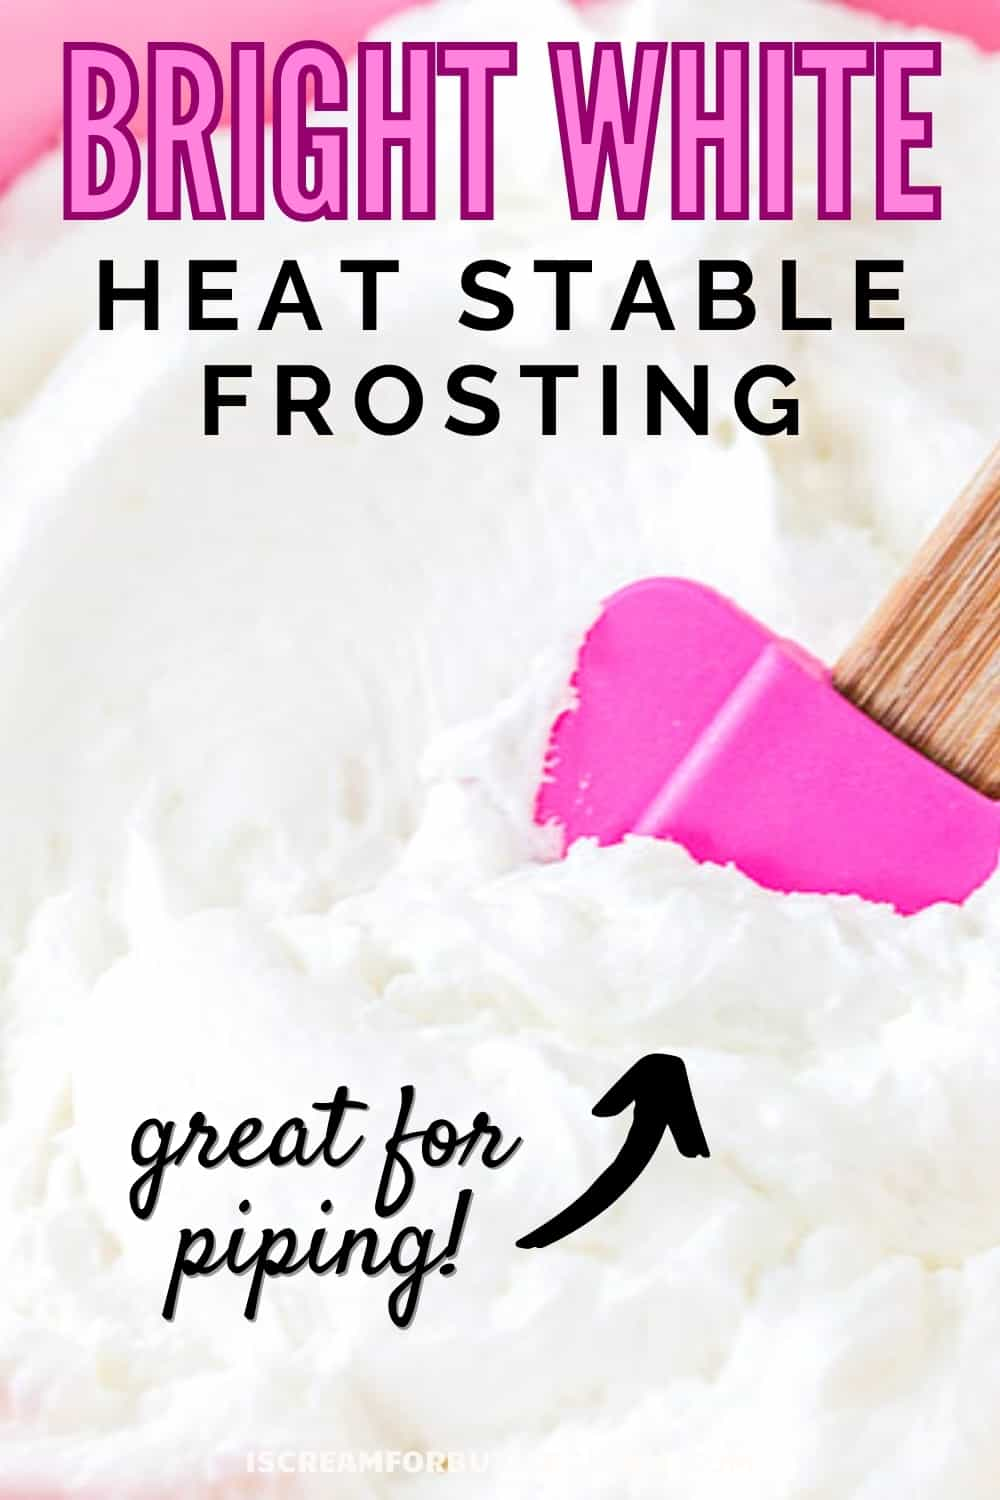 heat stable frosting with text overlay pin graphic